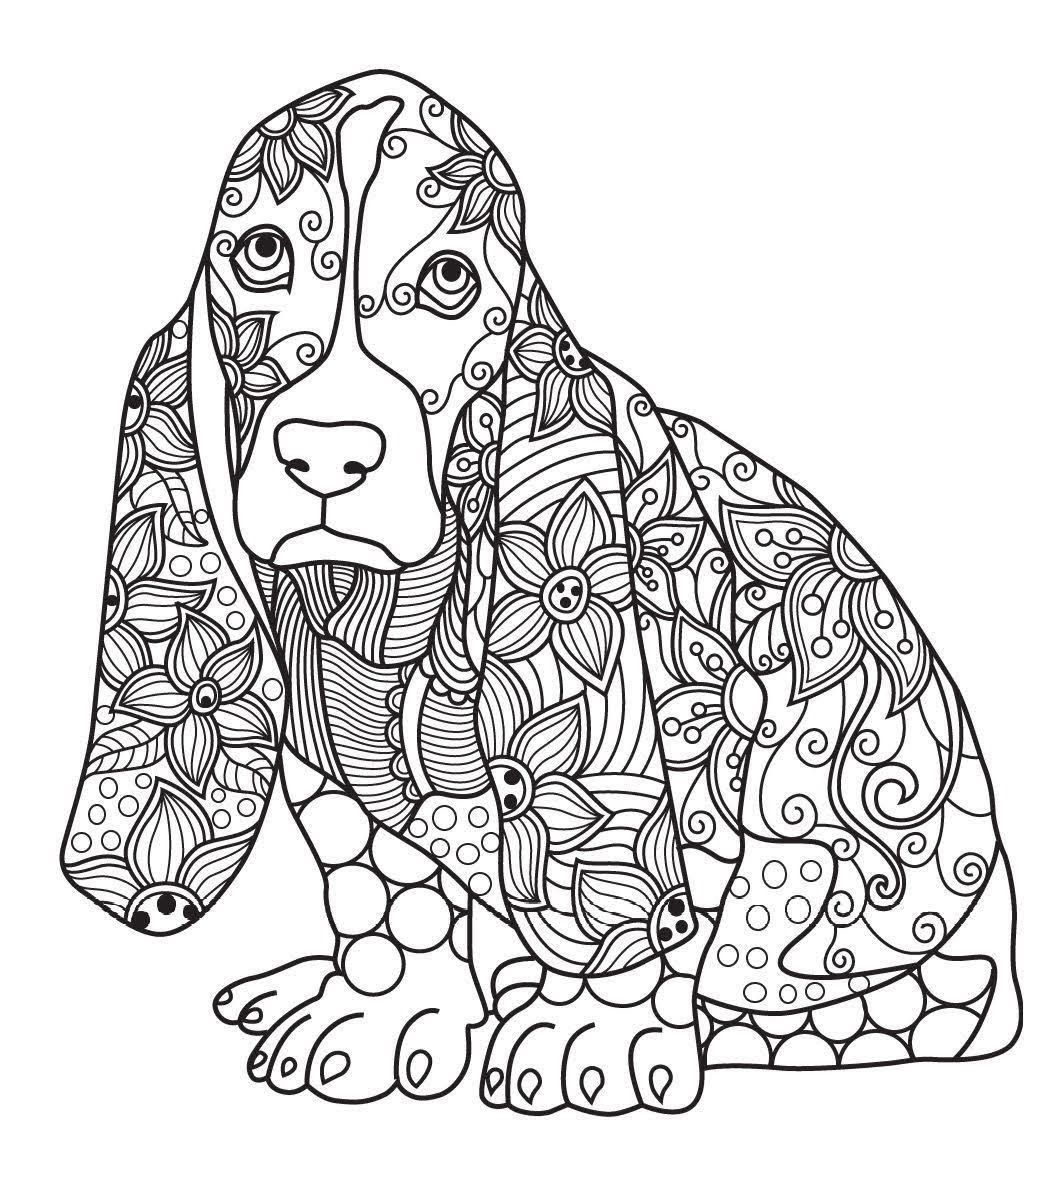 Pin By Antonella Morales On Coloring Pages In 2020 Dog Coloring Page Dog Coloring Book Animal Coloring Books